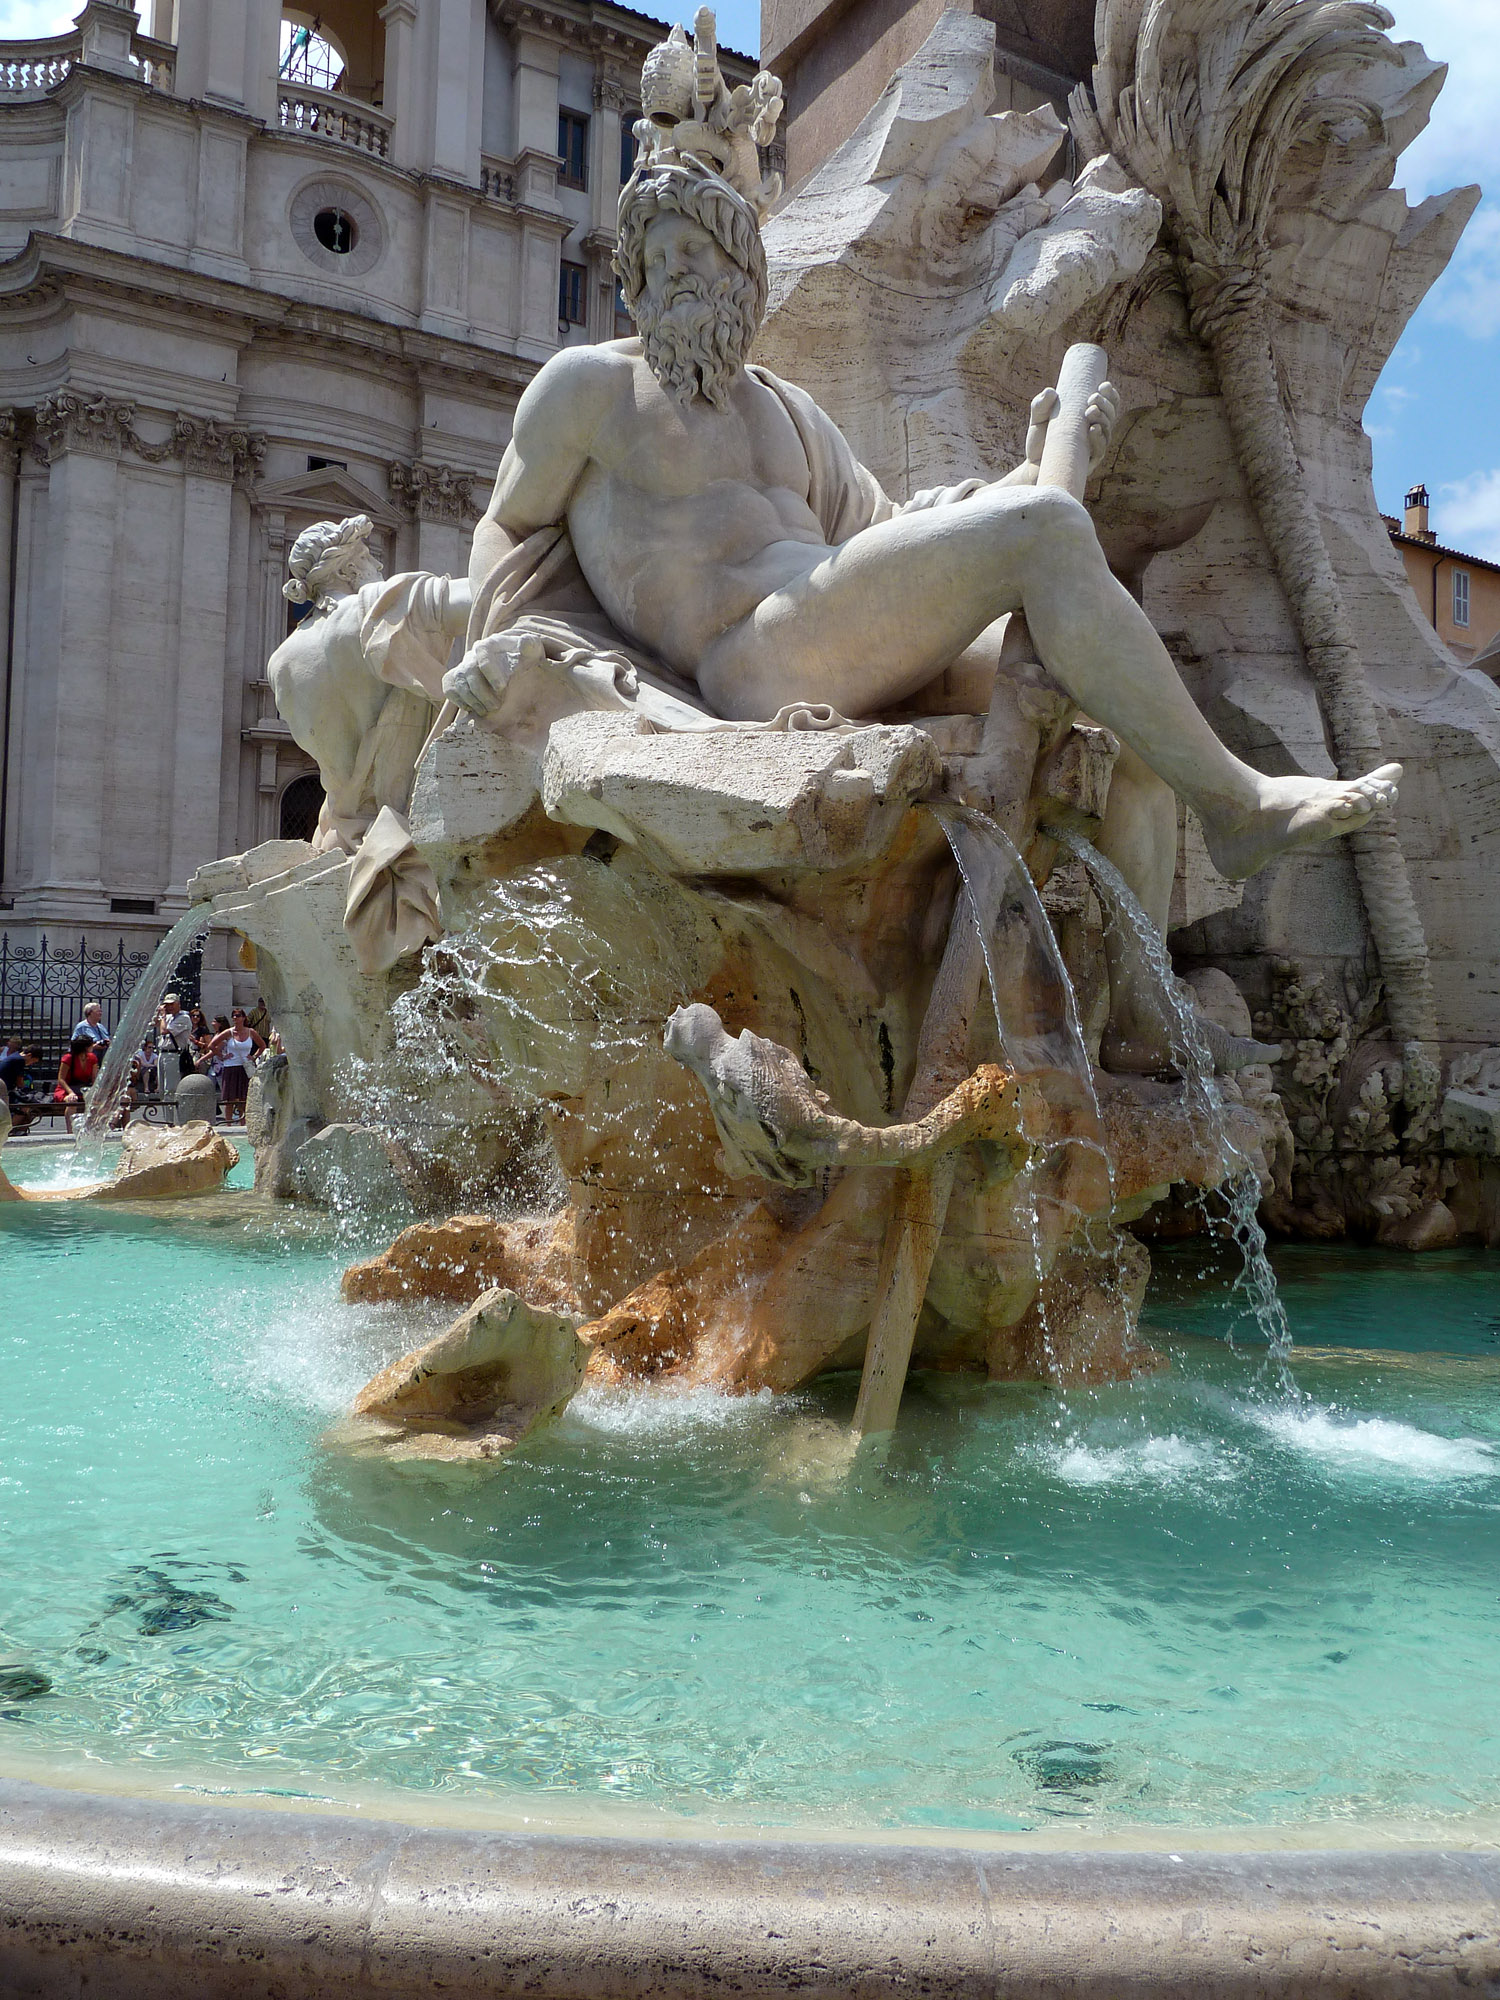 River-god Ganges: Bernini's Fountain of Four Rivers, Rome